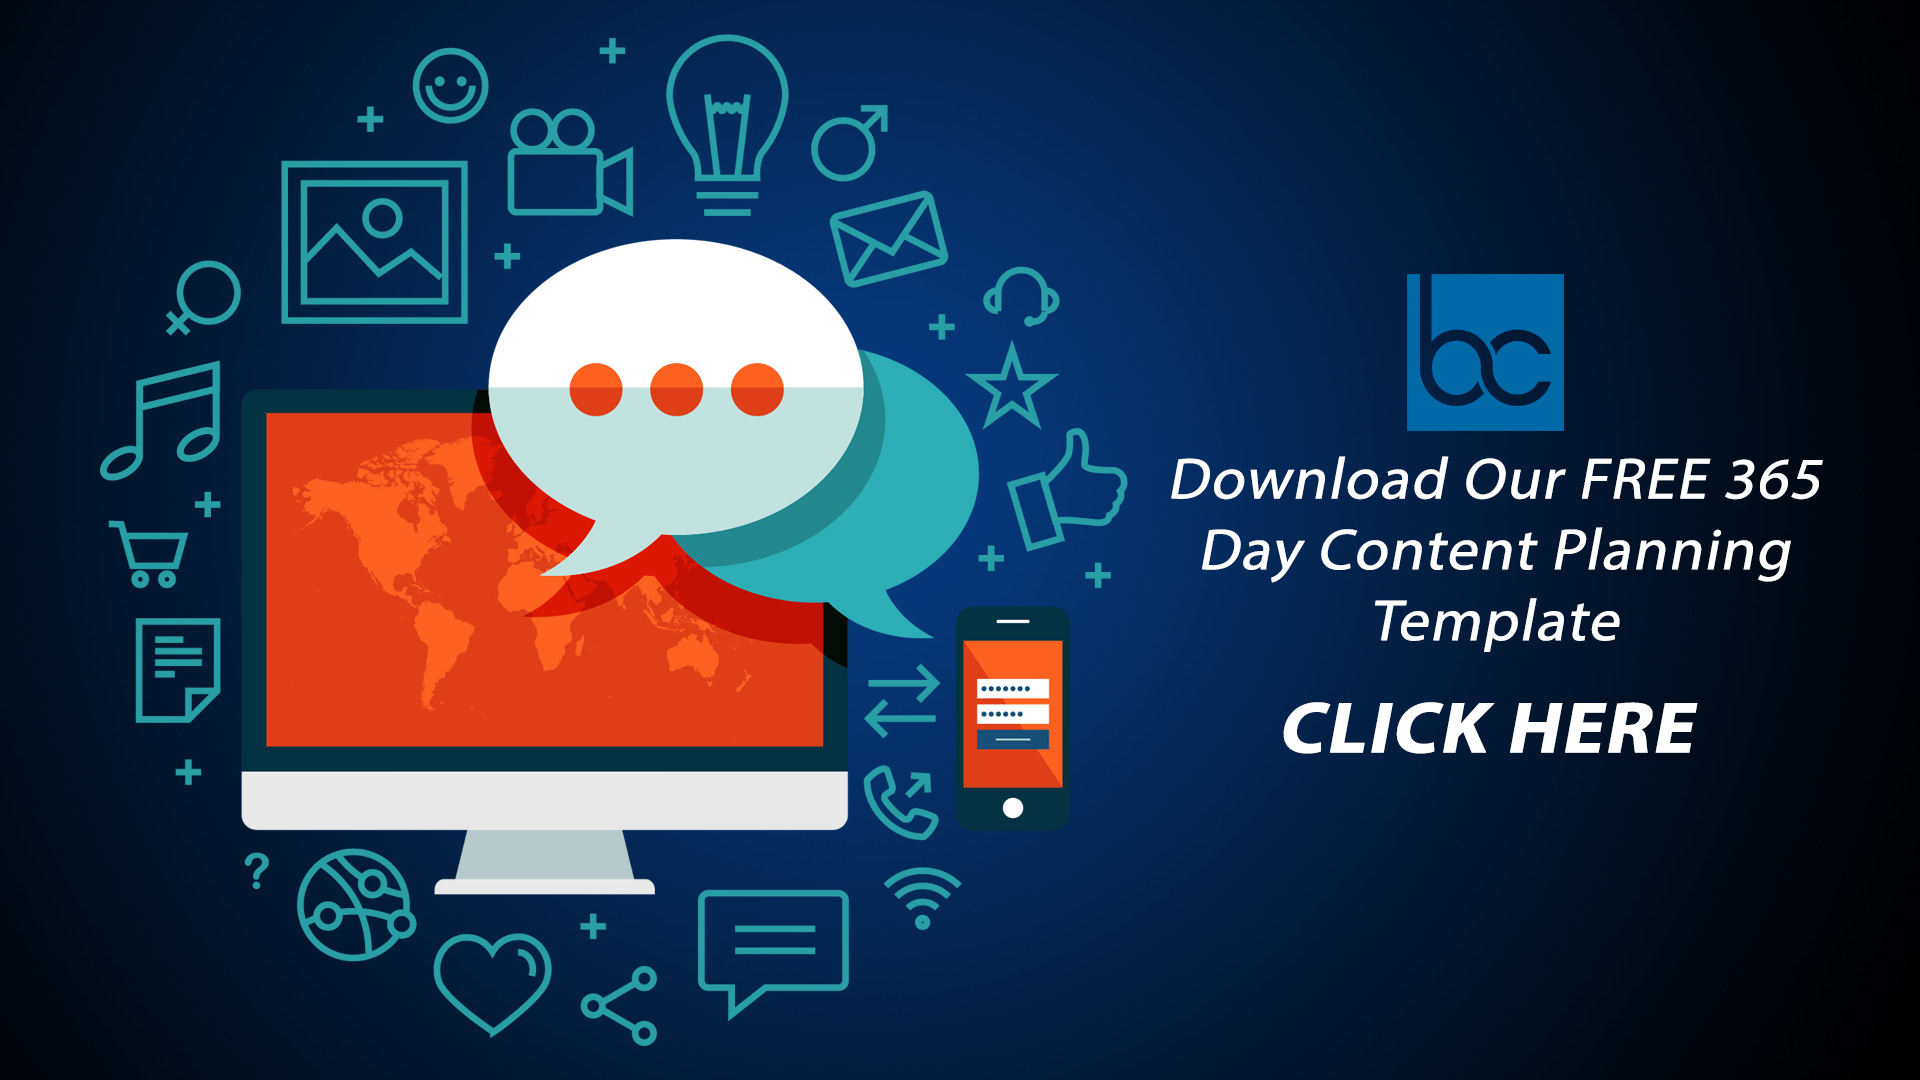 Download Our FREE 365 Day Content Planning Template